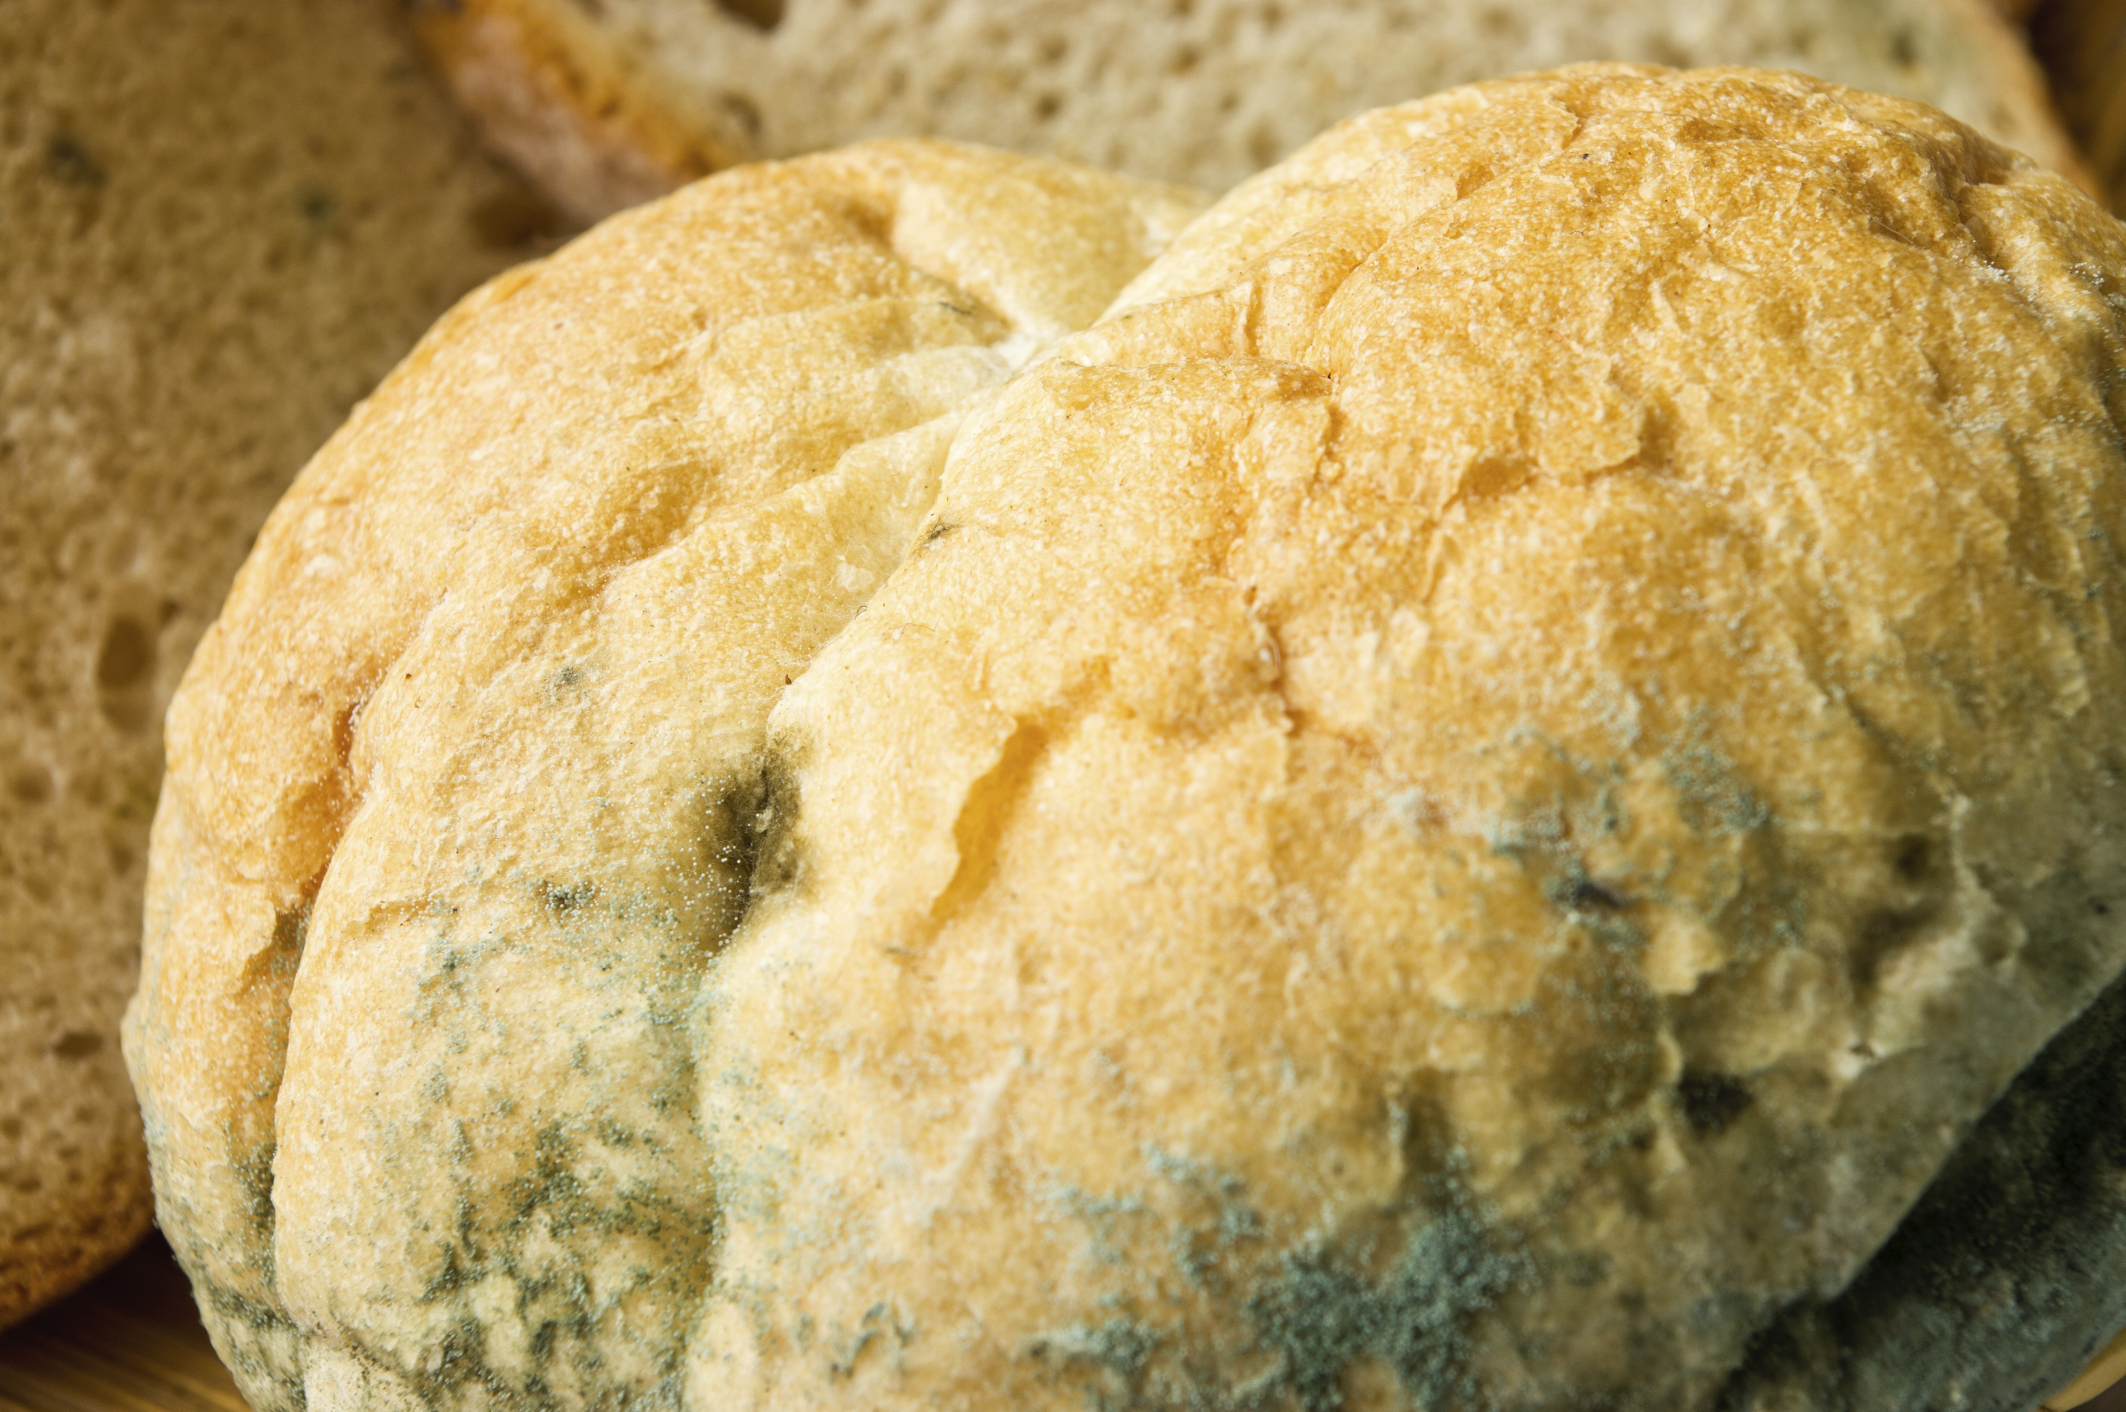 Will Eating Moldy Bread Make You Sick Healthfully